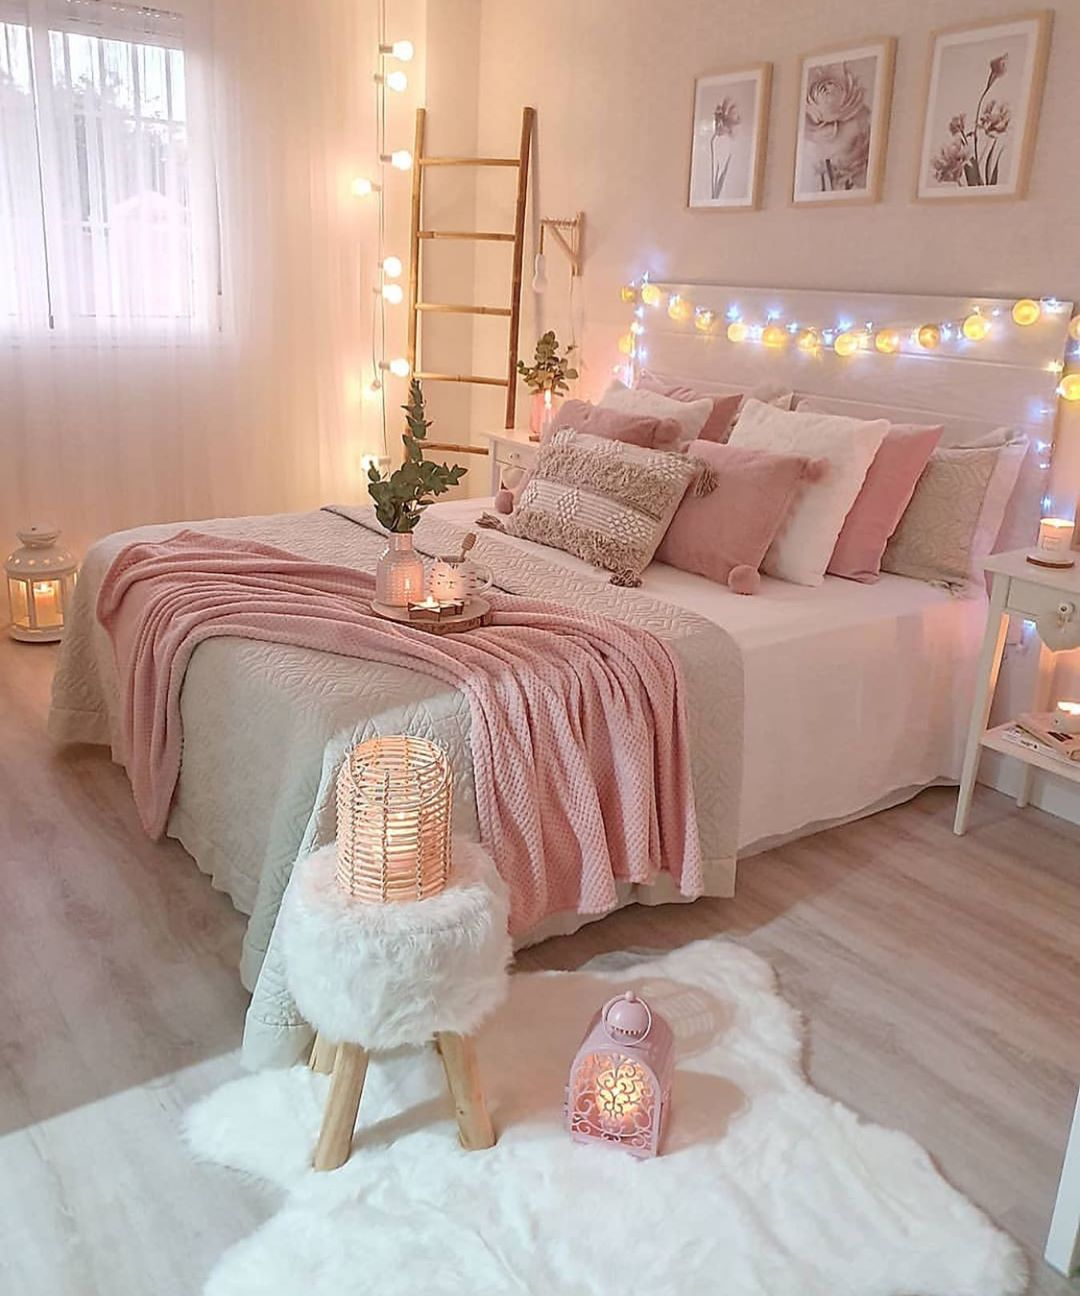 Room For Girl Interior Inspo On Instagram All The Details